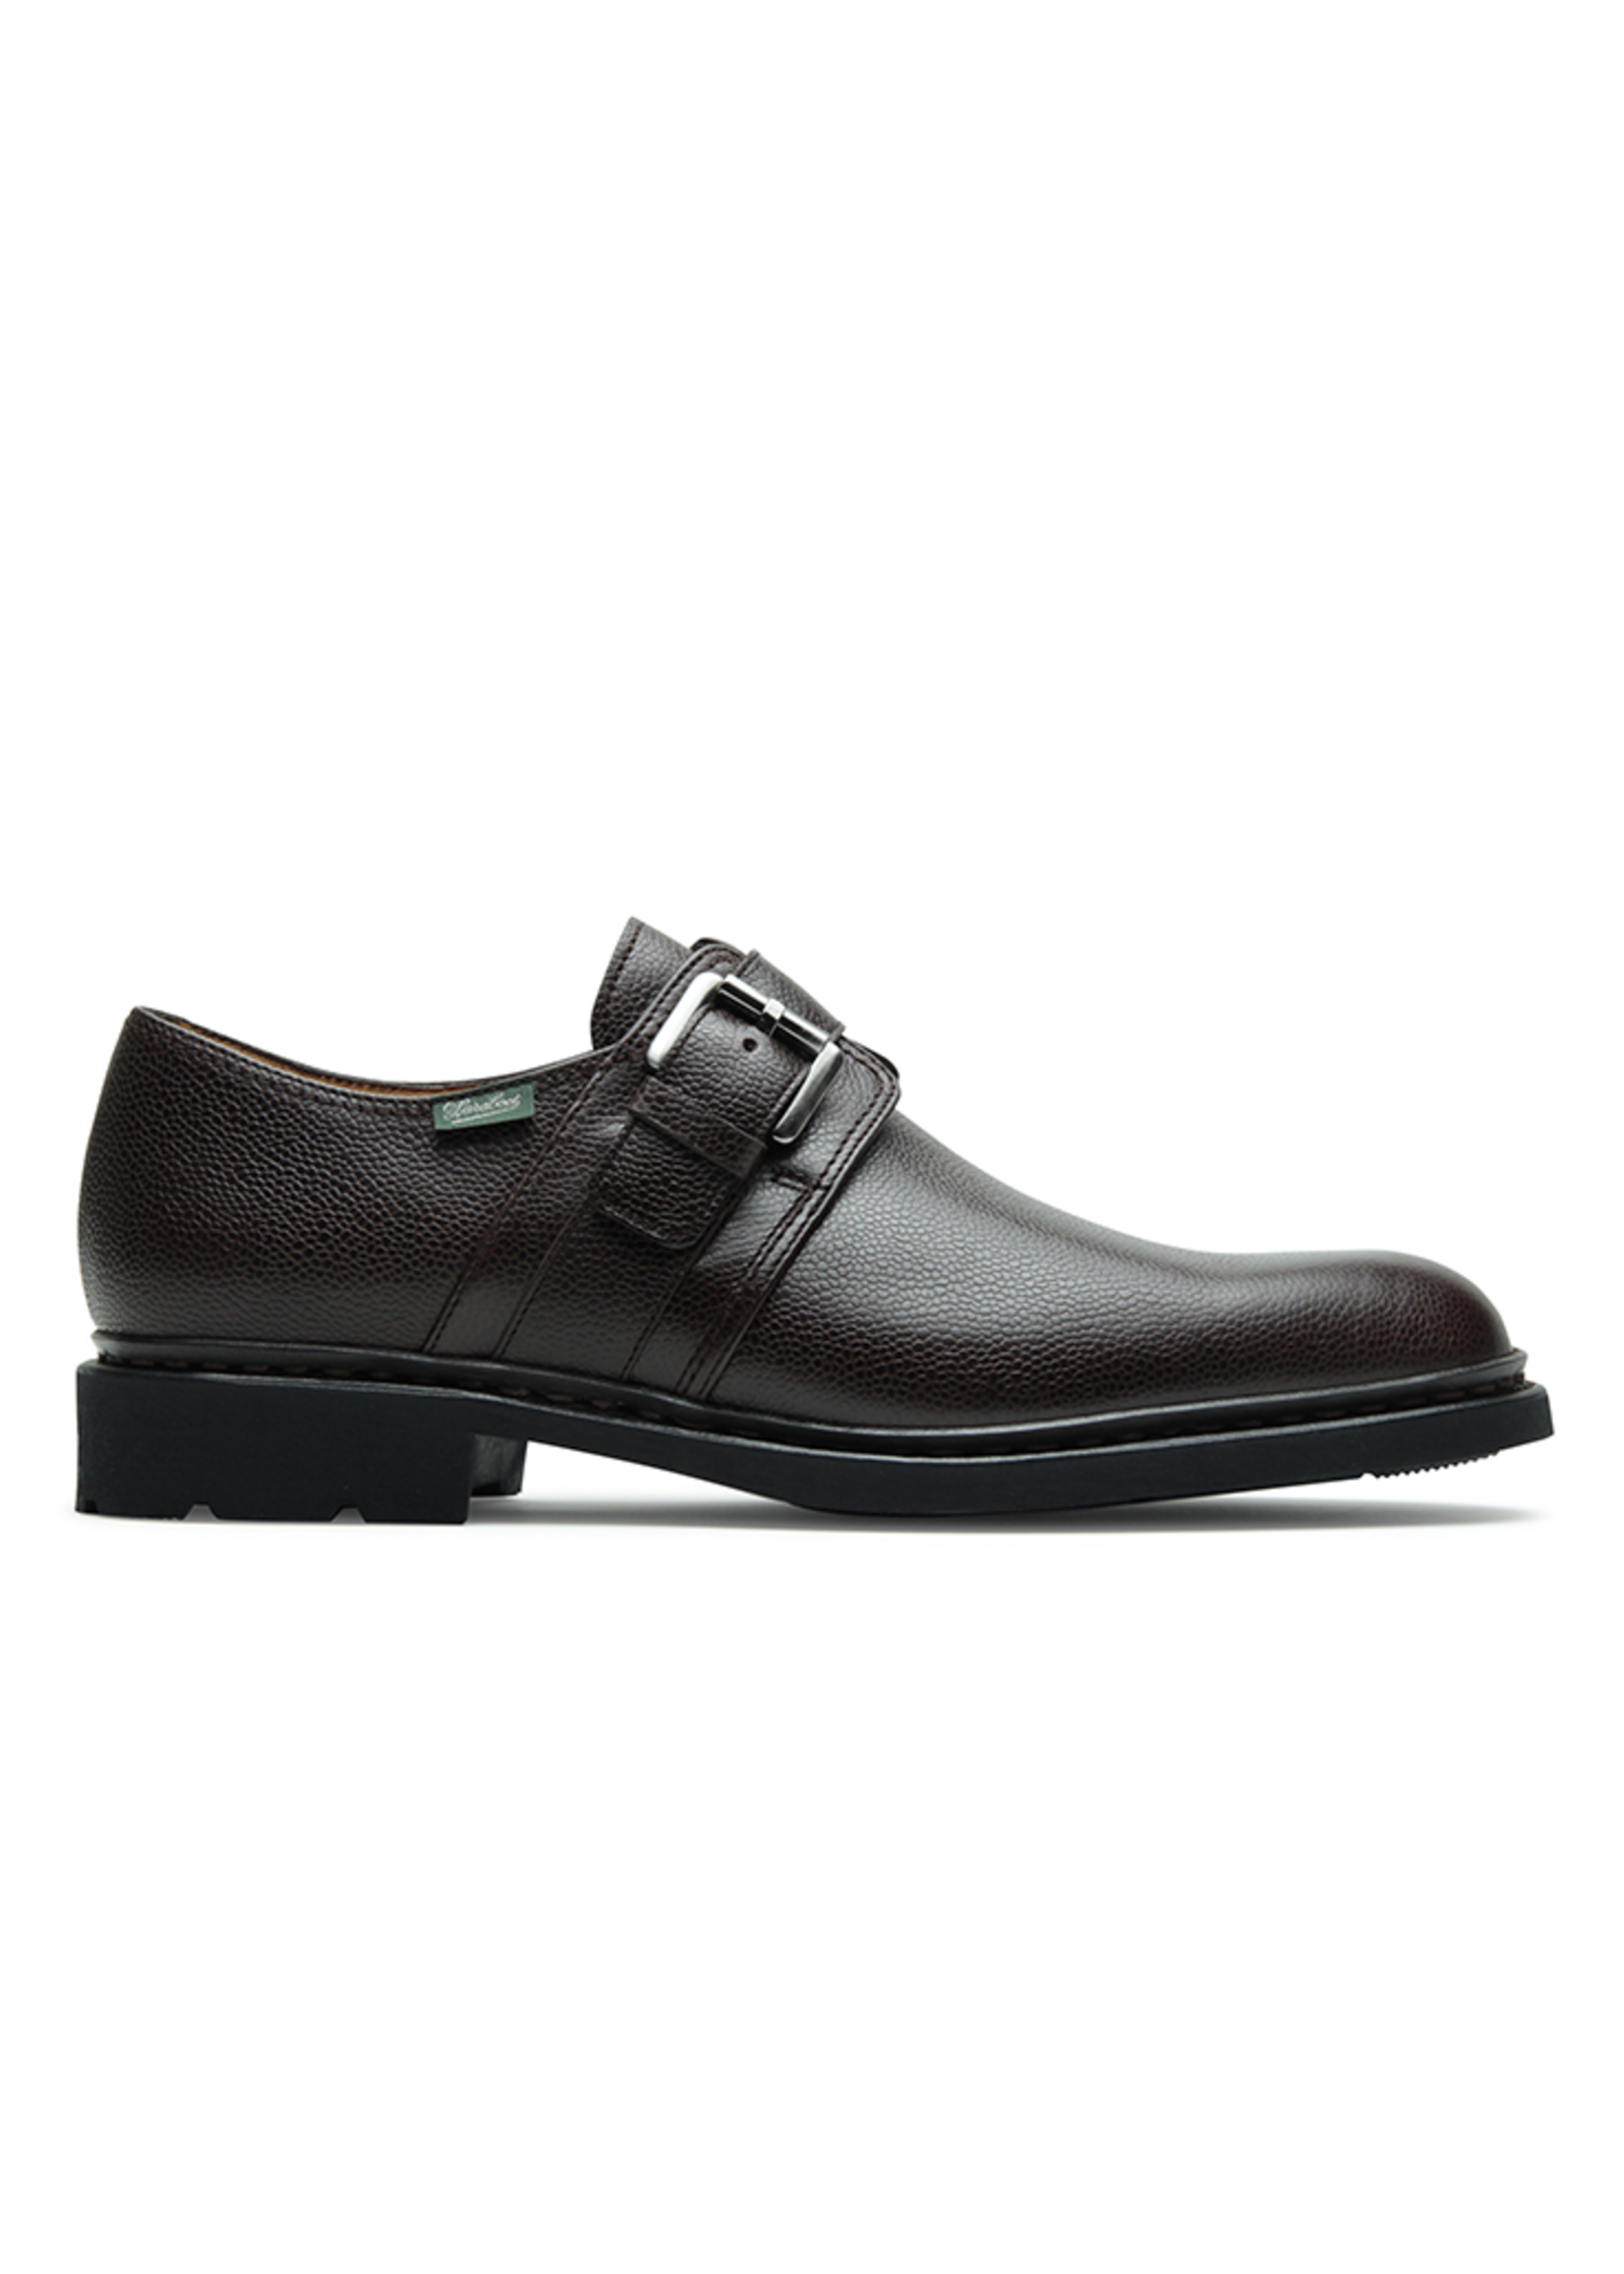 Paraboot Loty Cafe Grain Monk Strap by Paraboot